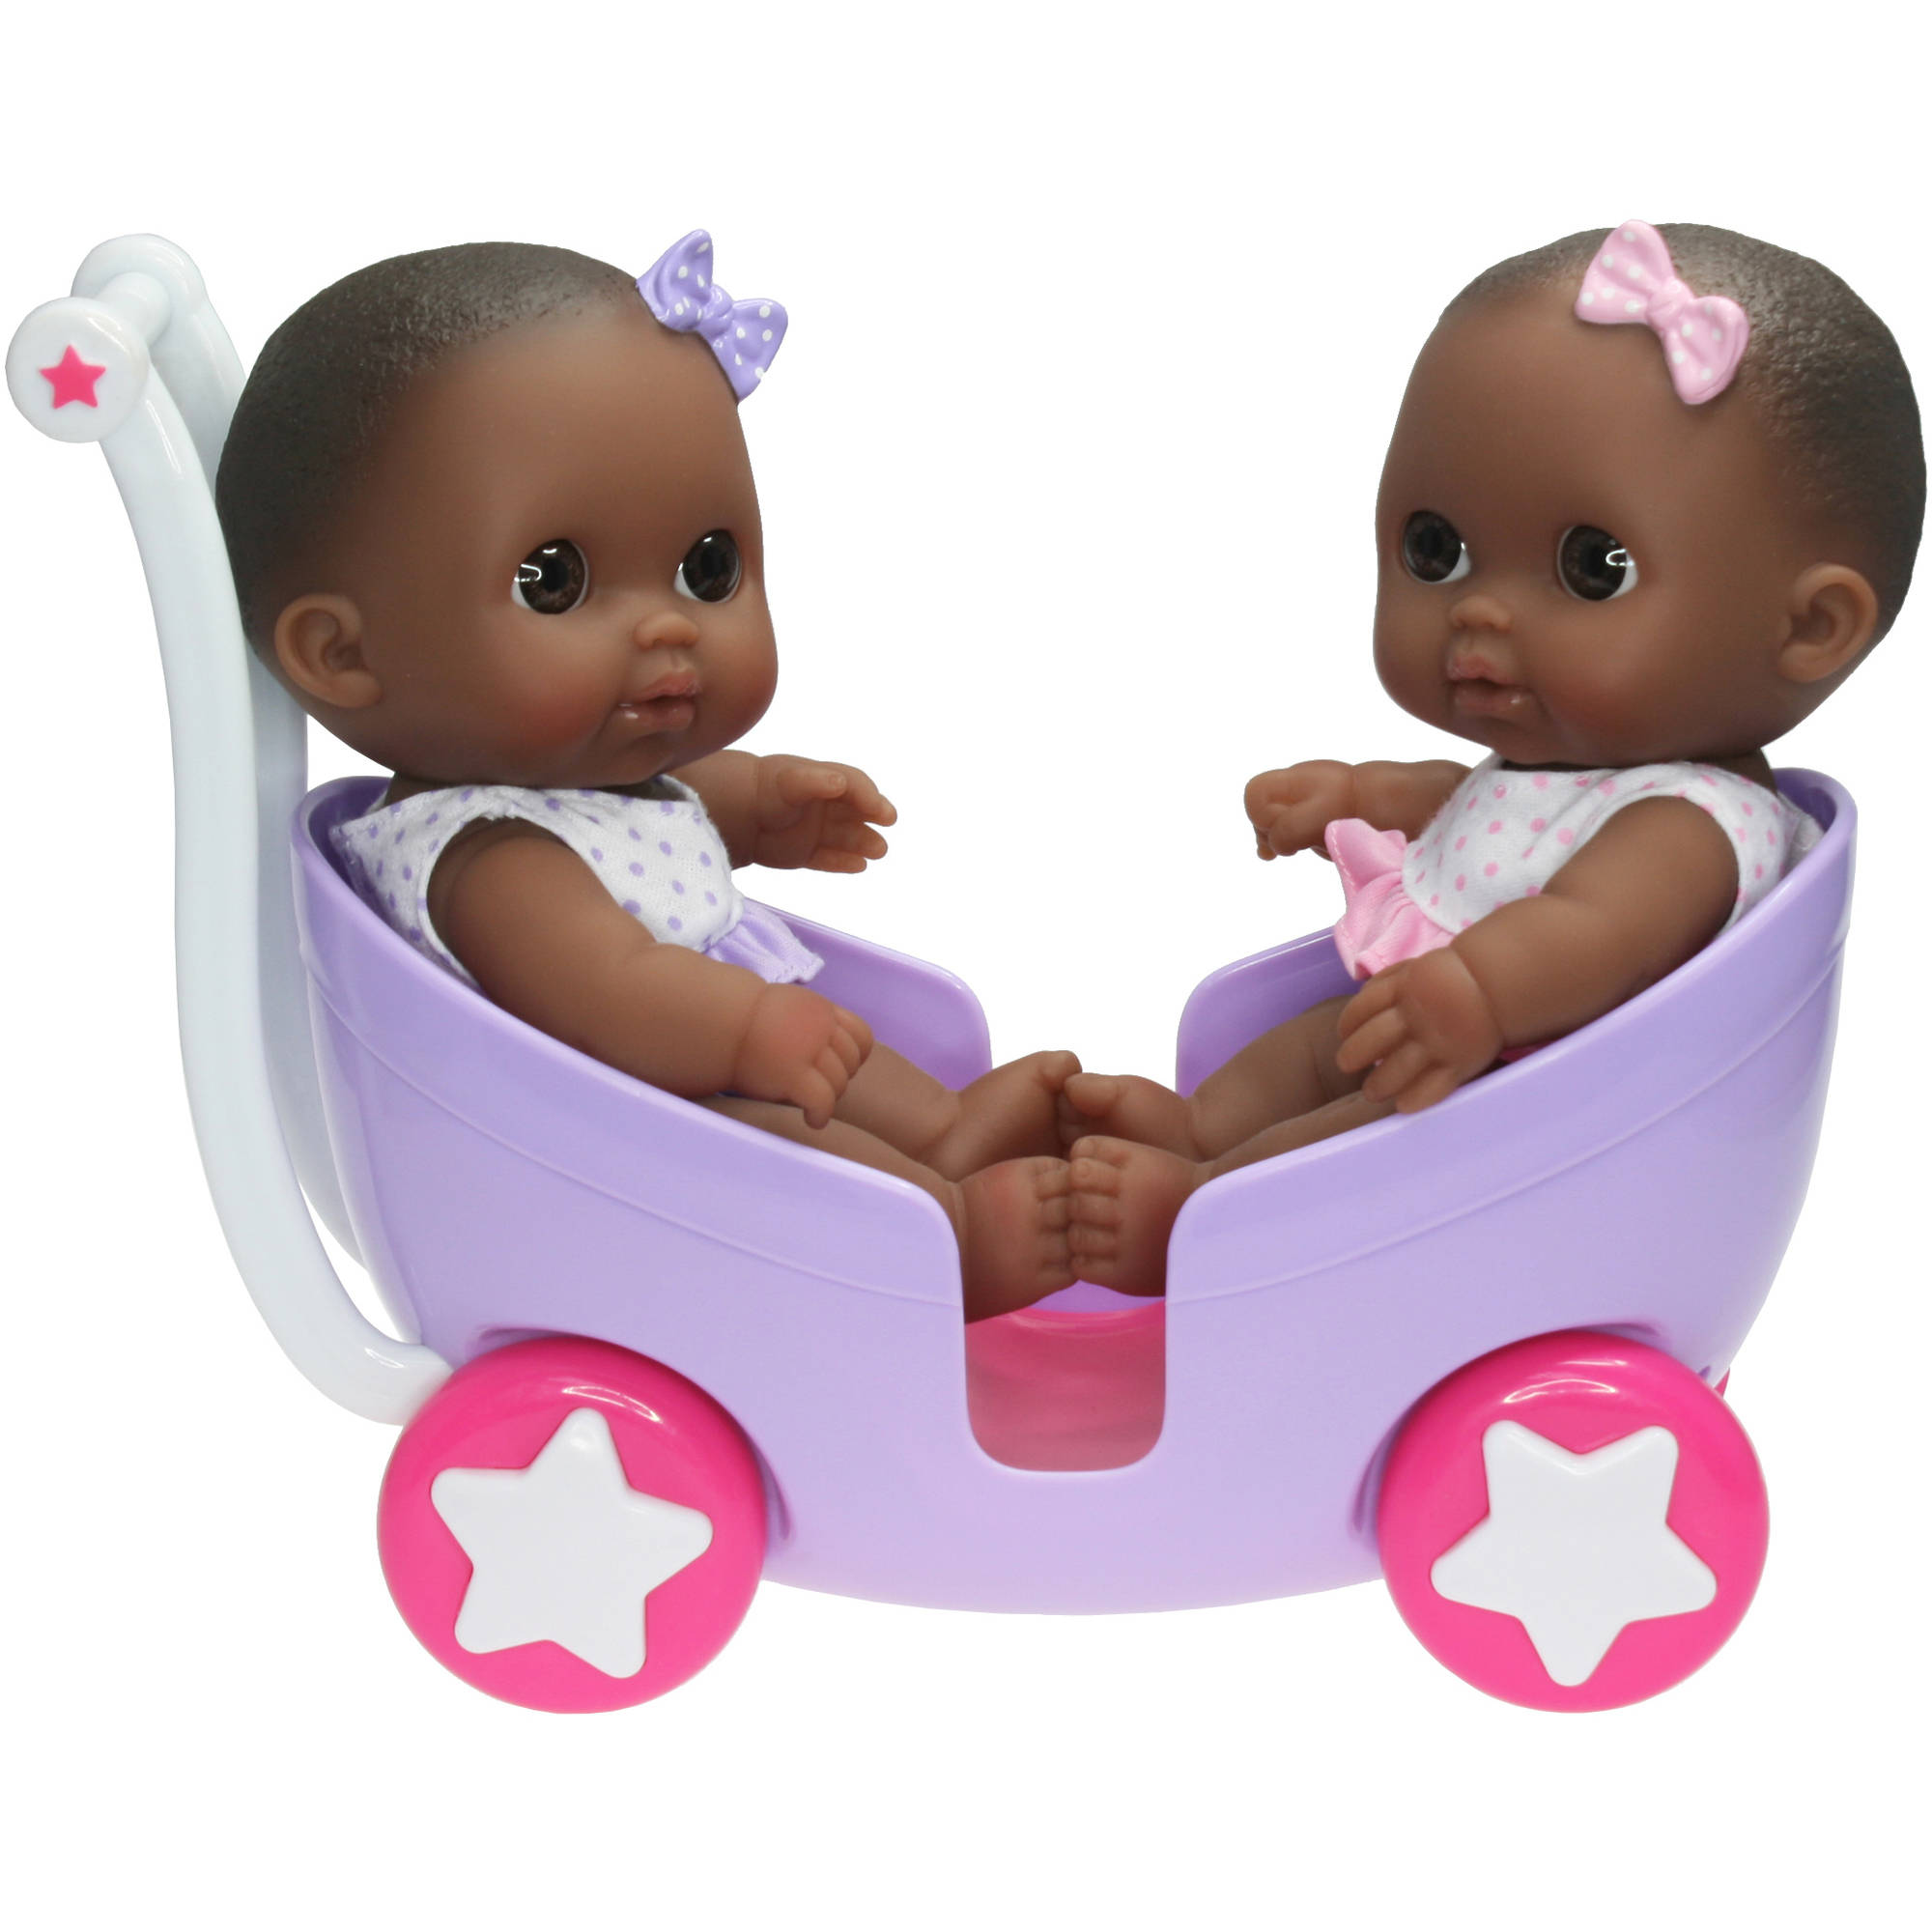 Berenguer Lil' Cutesies Twin Dolls in Stroller